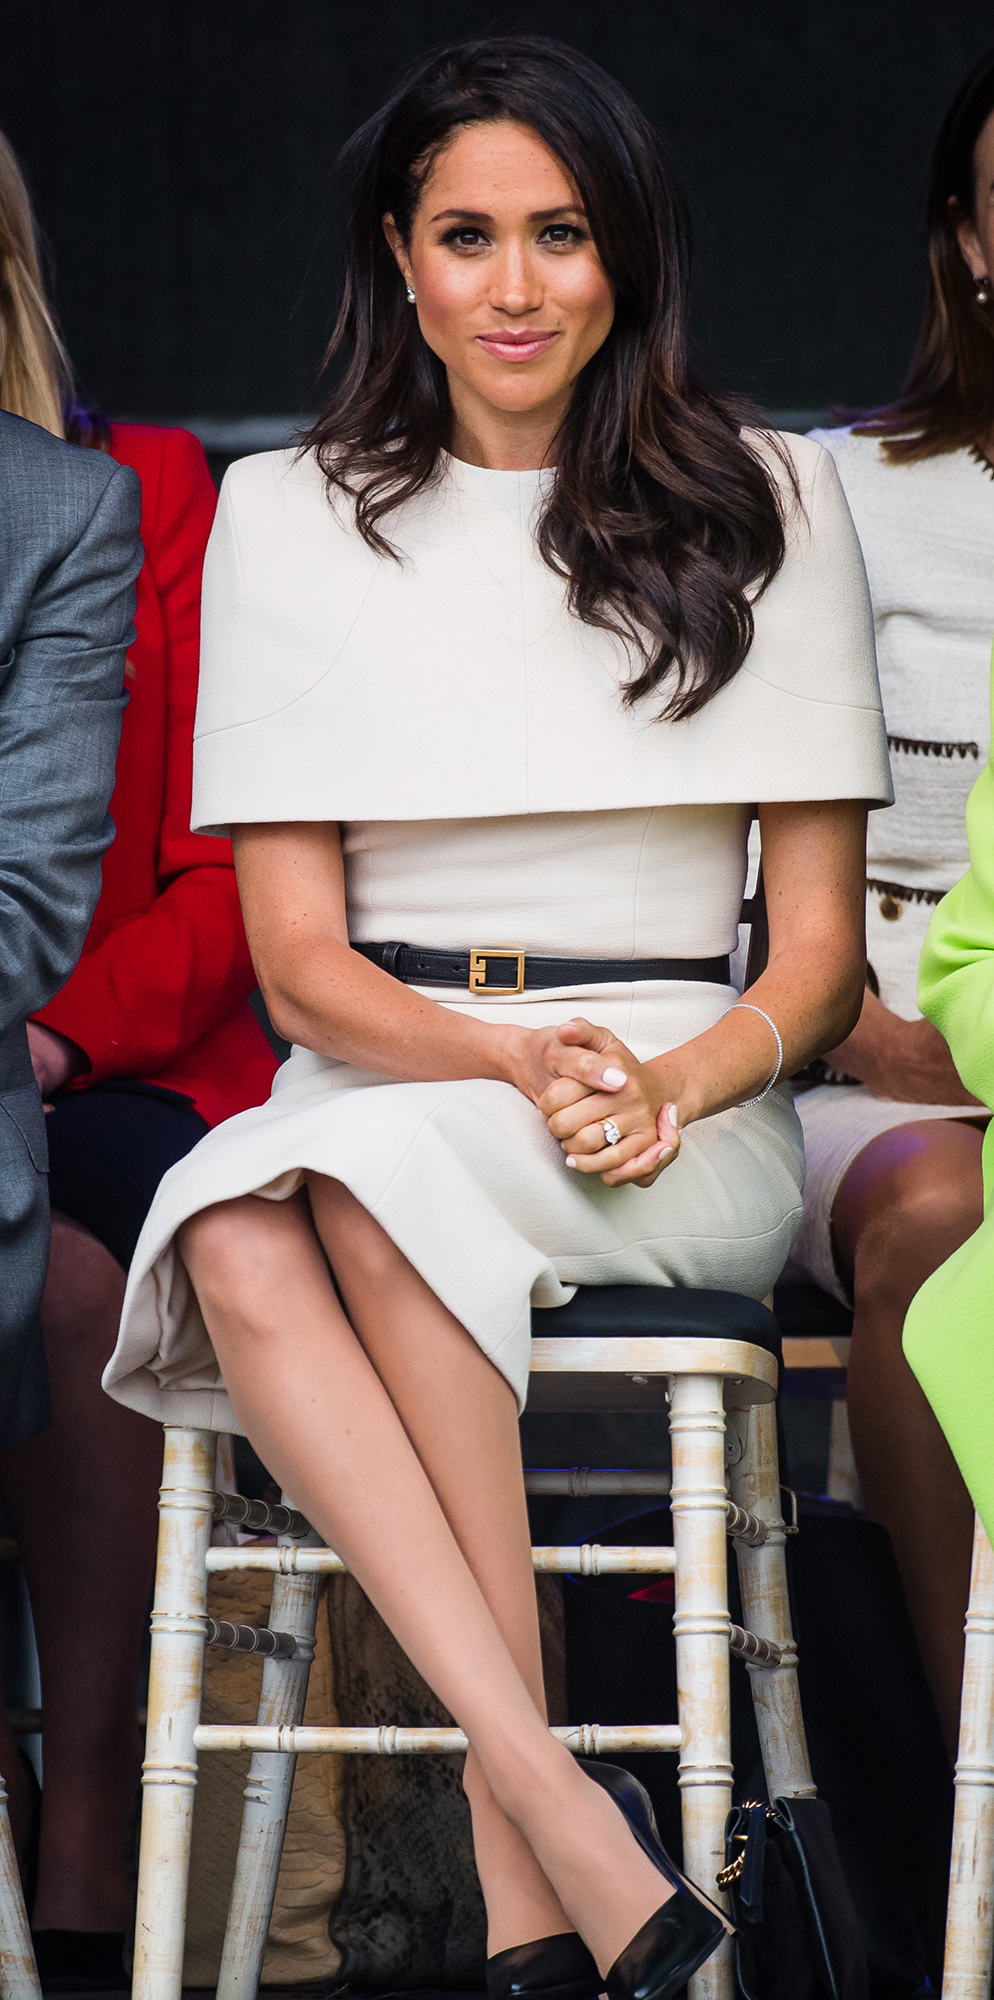 """Everything Duchess Meghan Has Said About Her Diet and Fitness Tricks - """"French fries – I could eat French fries all day,"""" the Duchess of Sussex (in Widness, England on June 14, 2018) told Best Health . """"And I love pasta. I love carbs — who doesn't love a carbohydrate? But of course, when I'm filming, I'm conscious of what I eat. I try to eat vegan during the week and then have a little bit more flexibility with what I dig into on the weekends. But at the same time, it's all about balance. Because I work out the way I do, I don't ever want to feel deprived. I feel that the second you do that is when you start to binge on things. It's not a diet; it's lifestyle eating."""""""